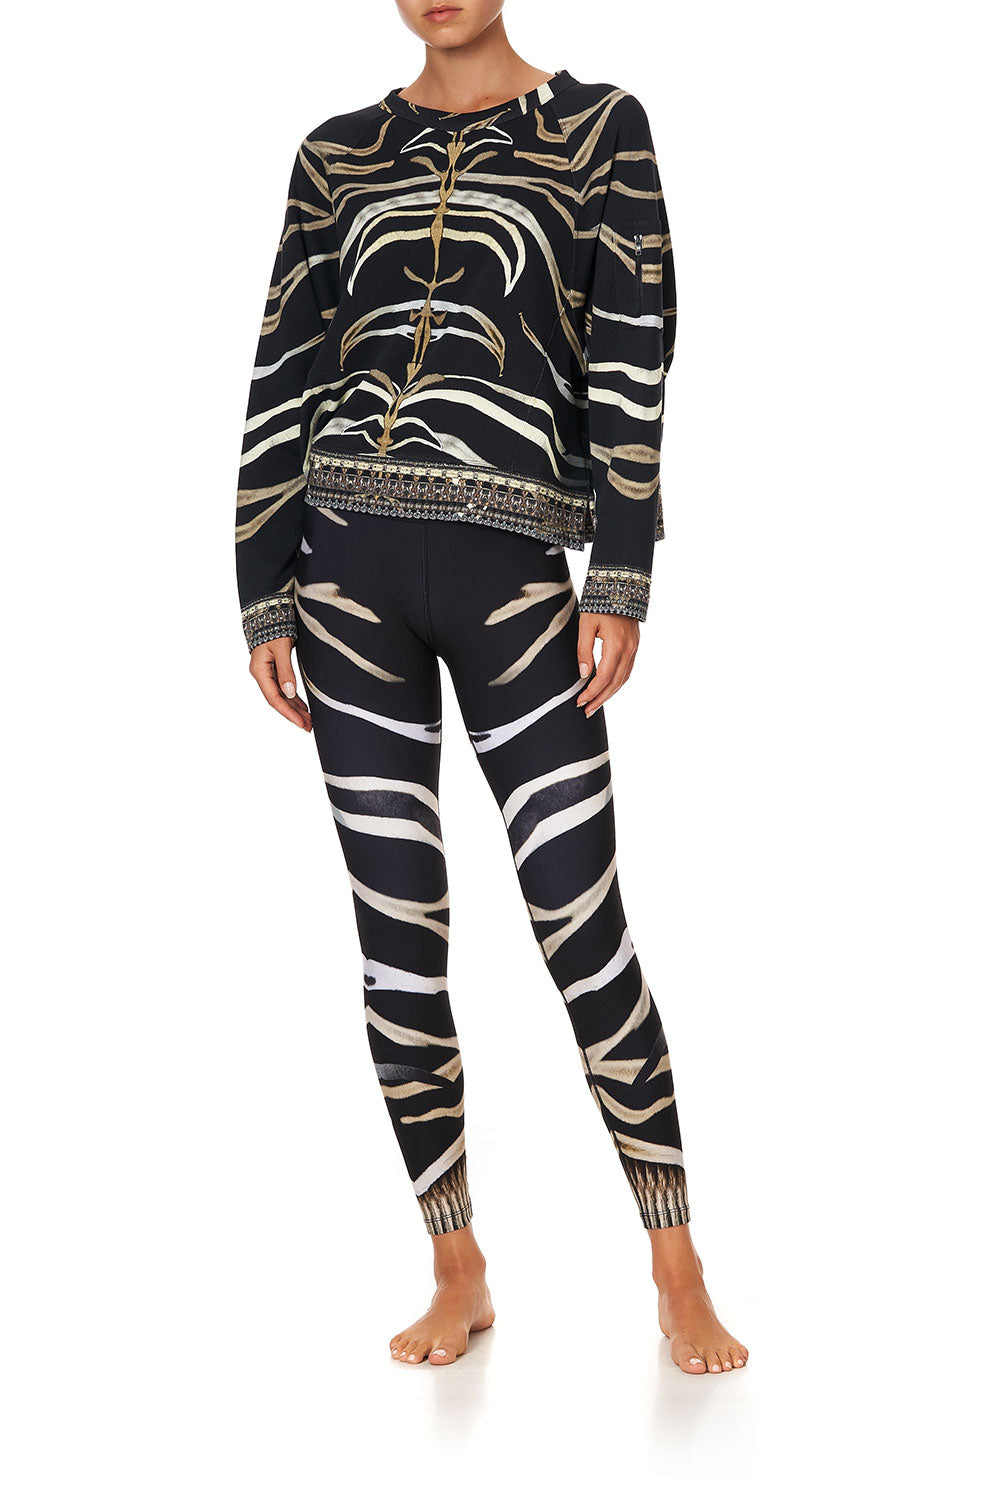 RAGLAN SLEEVE SWEATSHIRT ZEBRA CROSSING